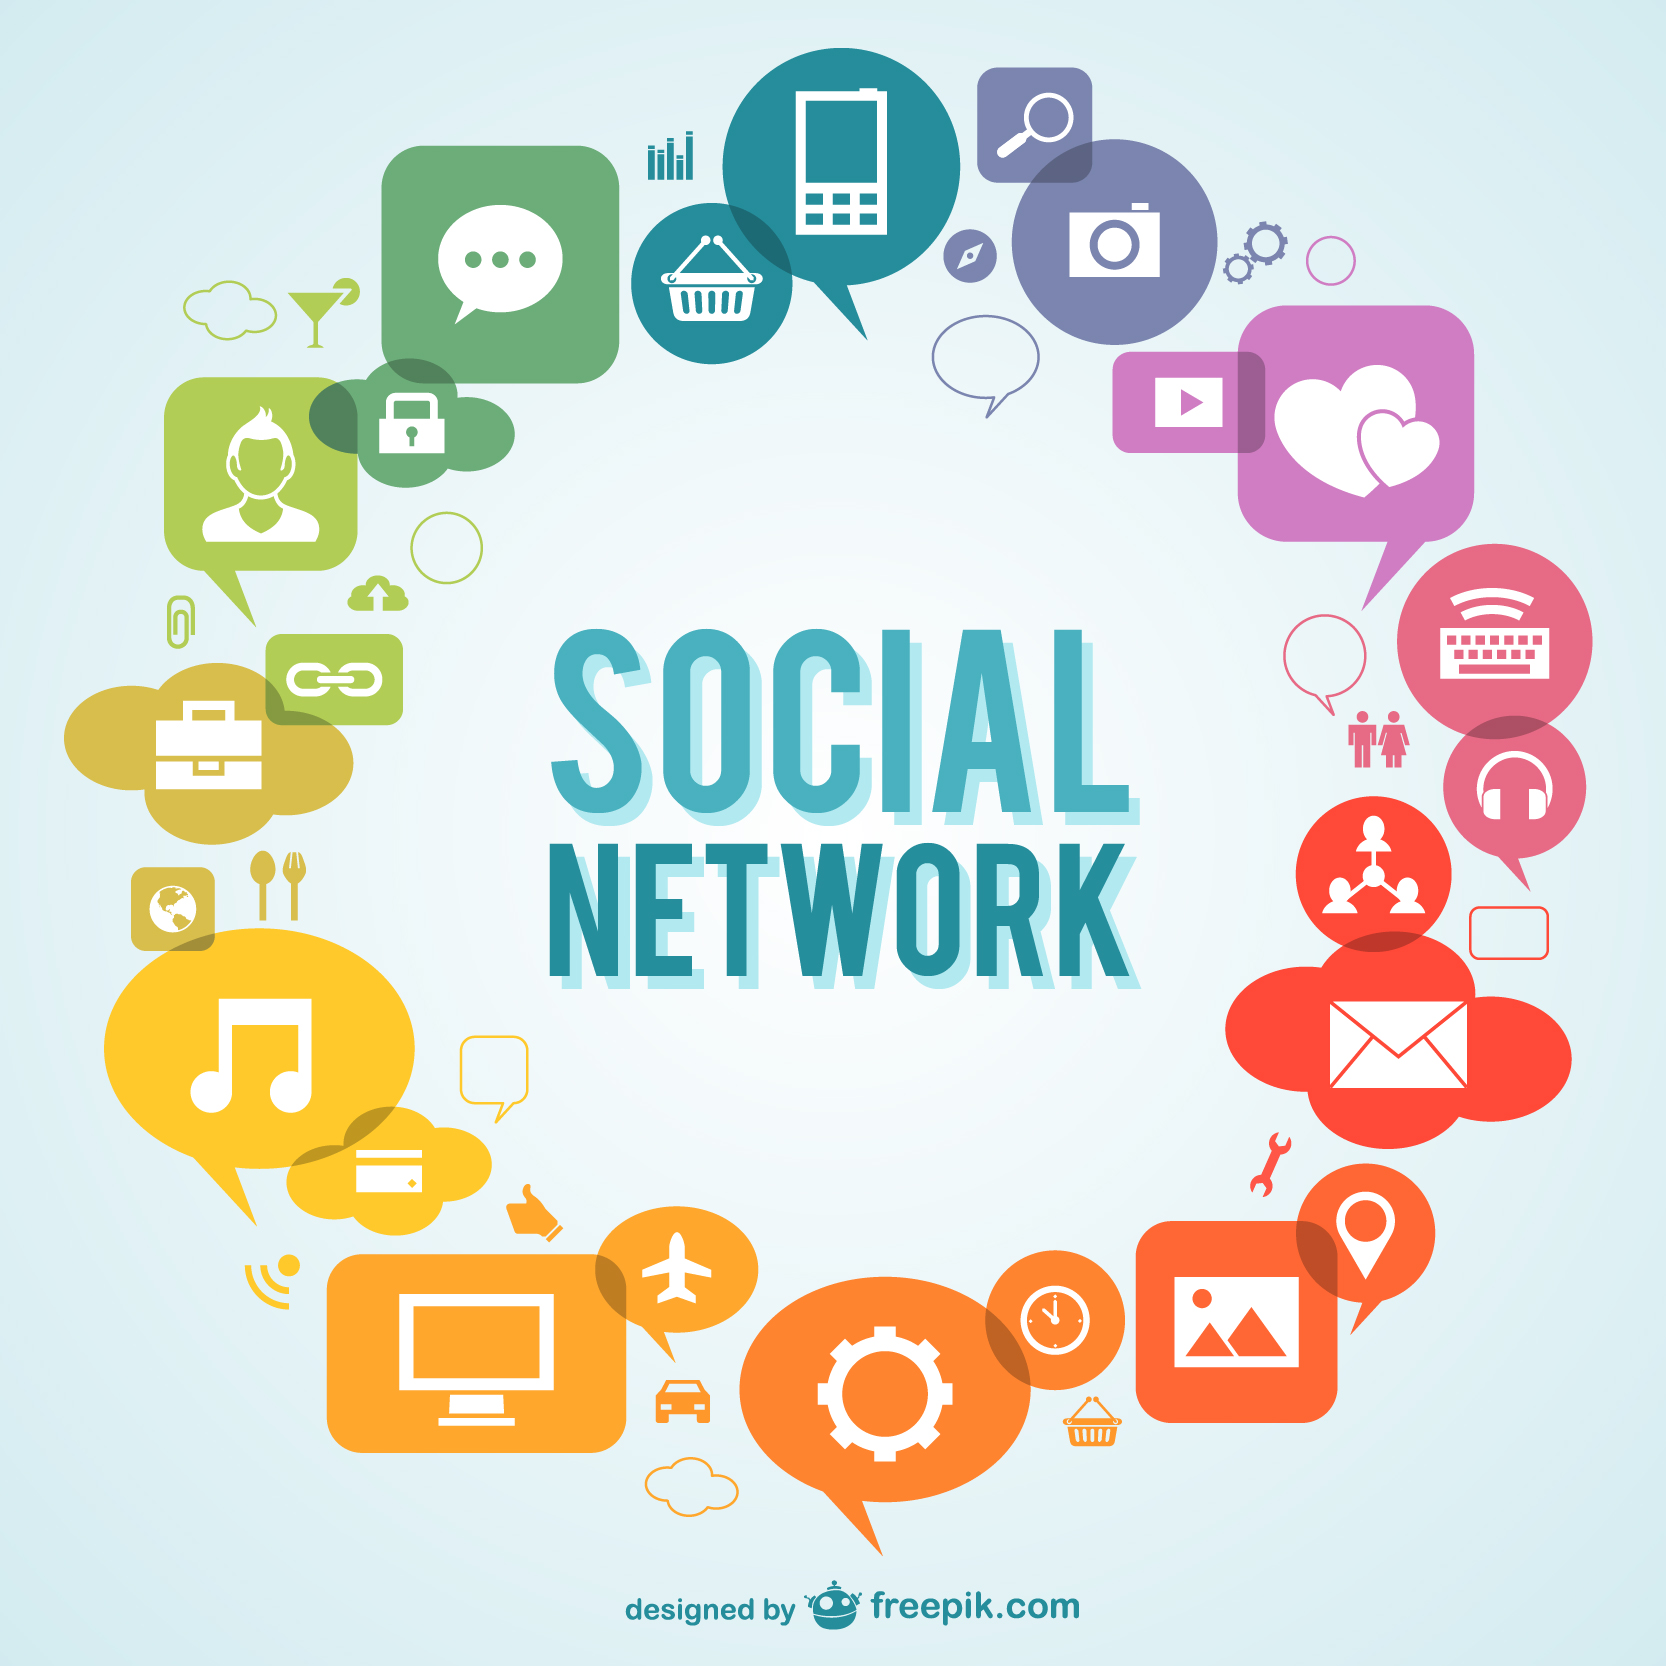 learn more about social networks